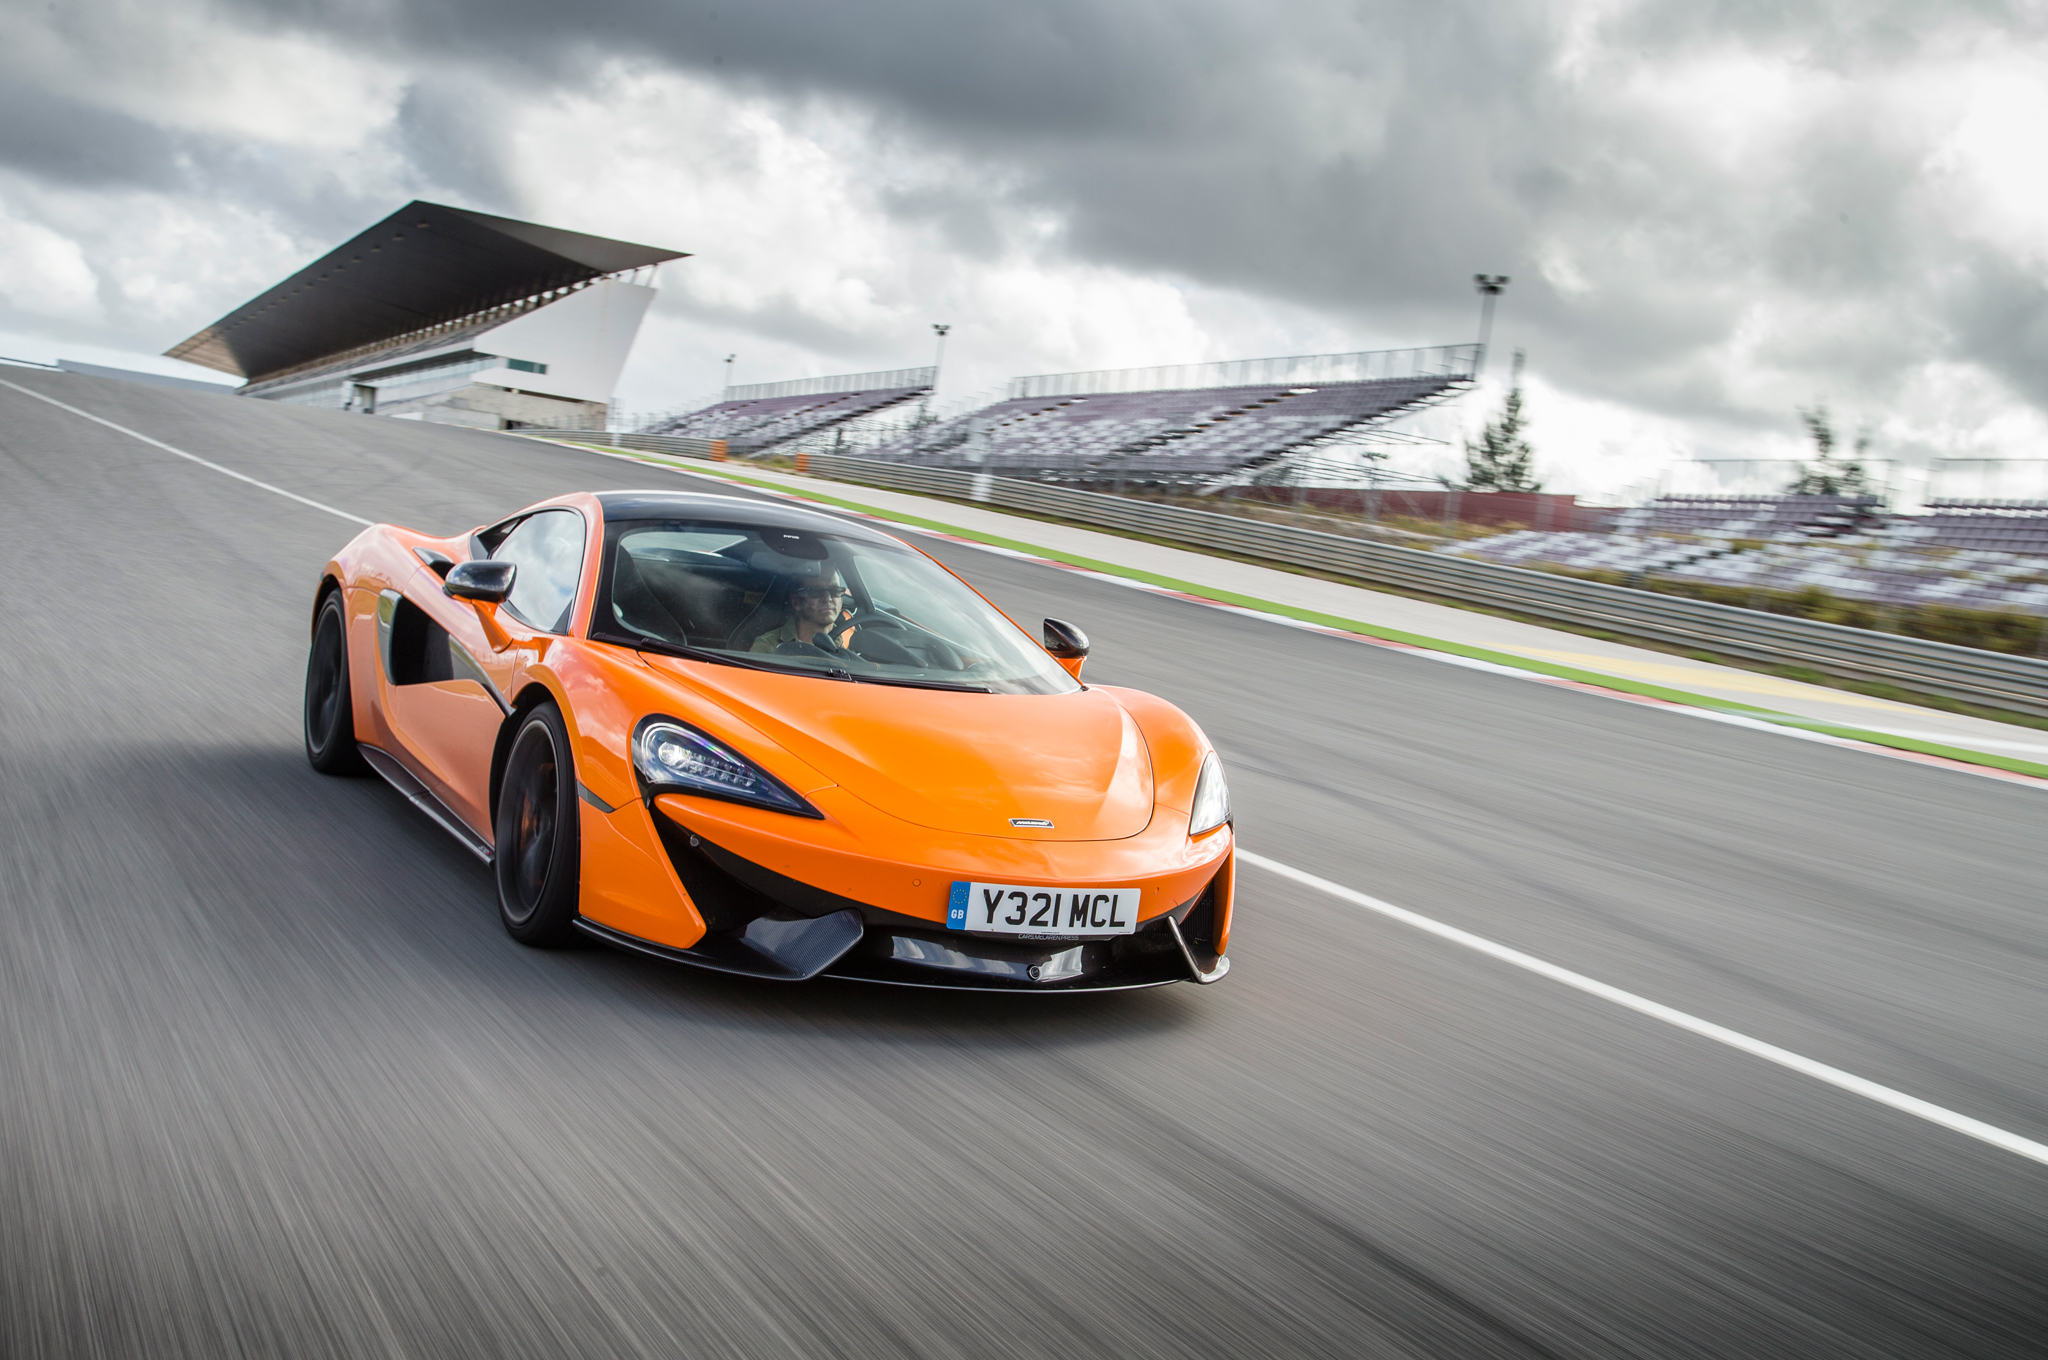 2048x1360 - McLaren 570S GT4 Wallpapers 12